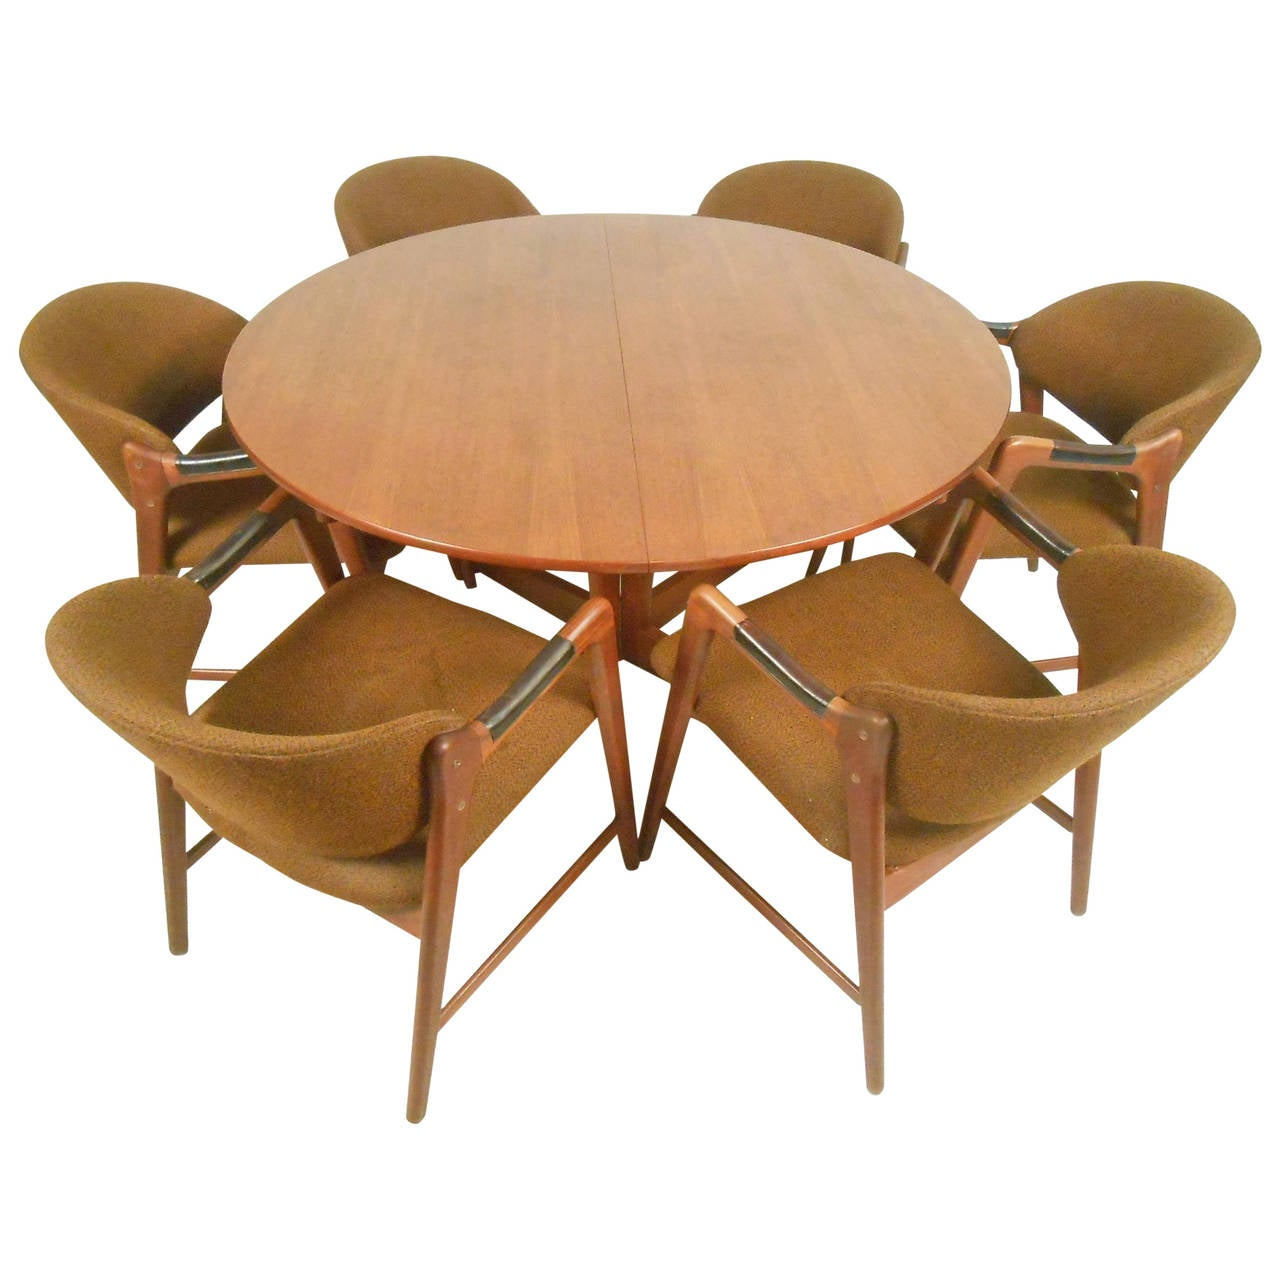 teak dining room chairs for sale kitchen chair cushions canadian tire mid century modern set with westnofa